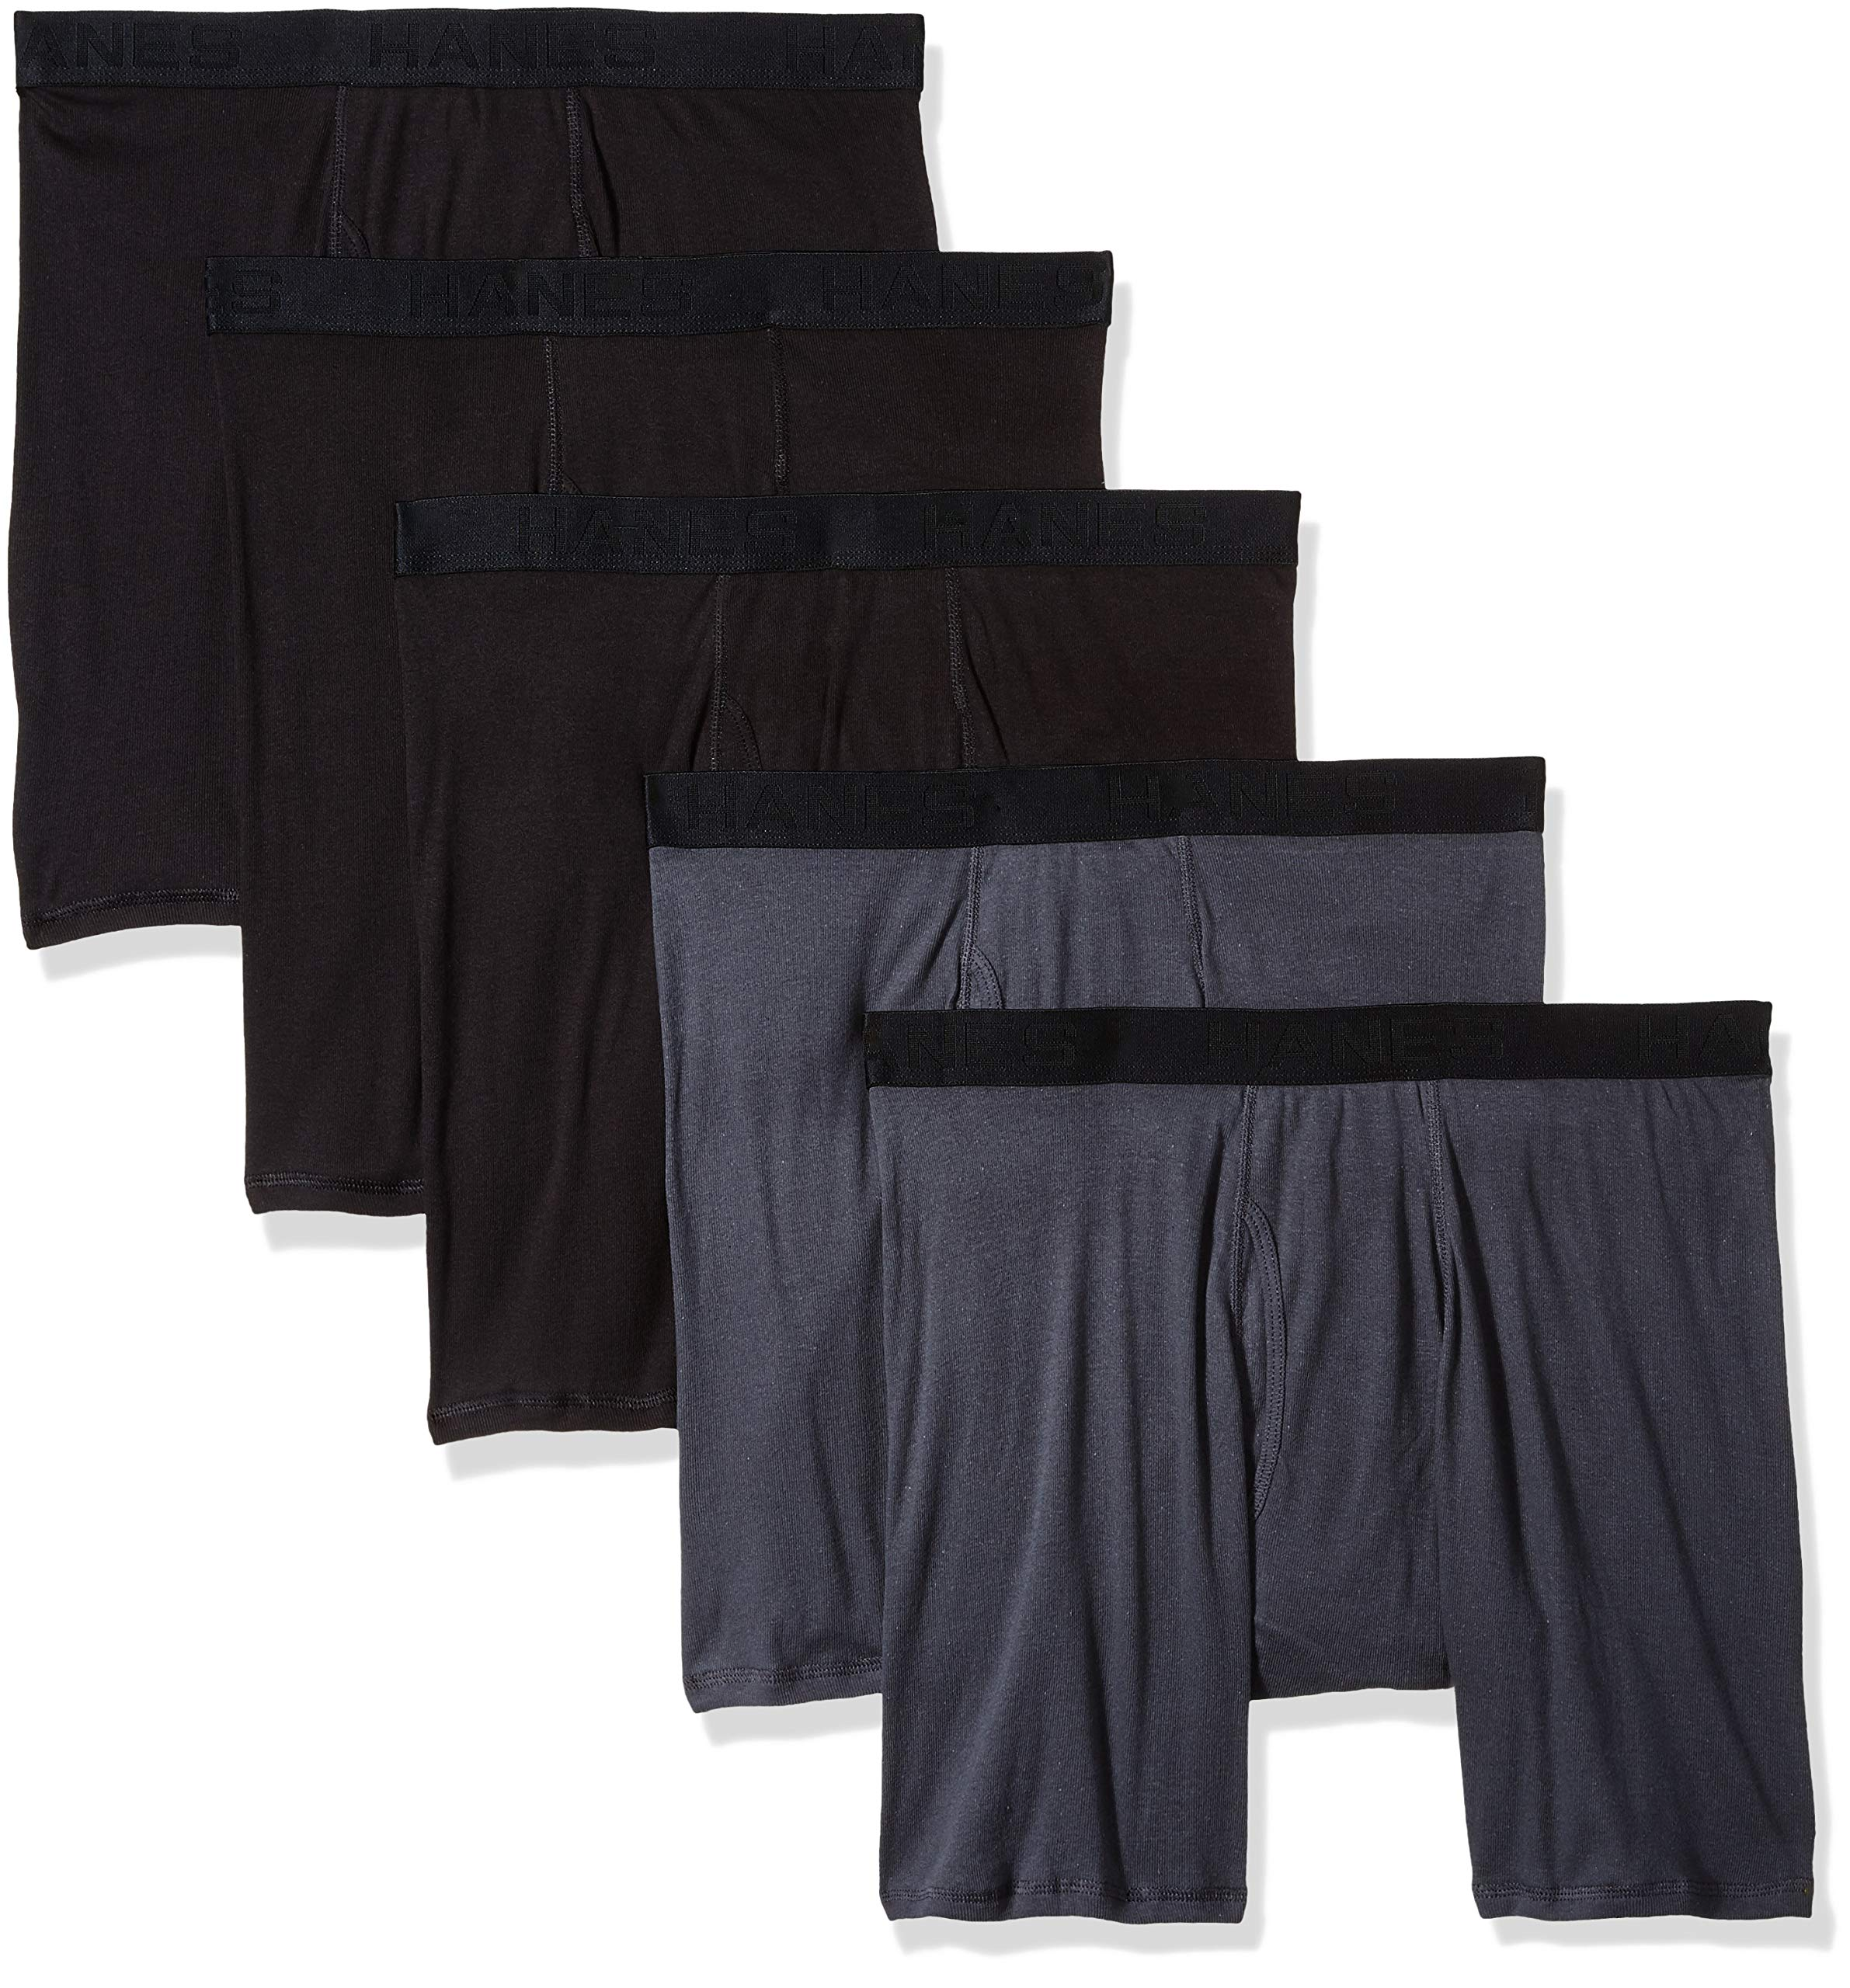 Hanes Ultimate Men's 5-Pack Boxer Brief, Black/Grey Assorted, X-Large